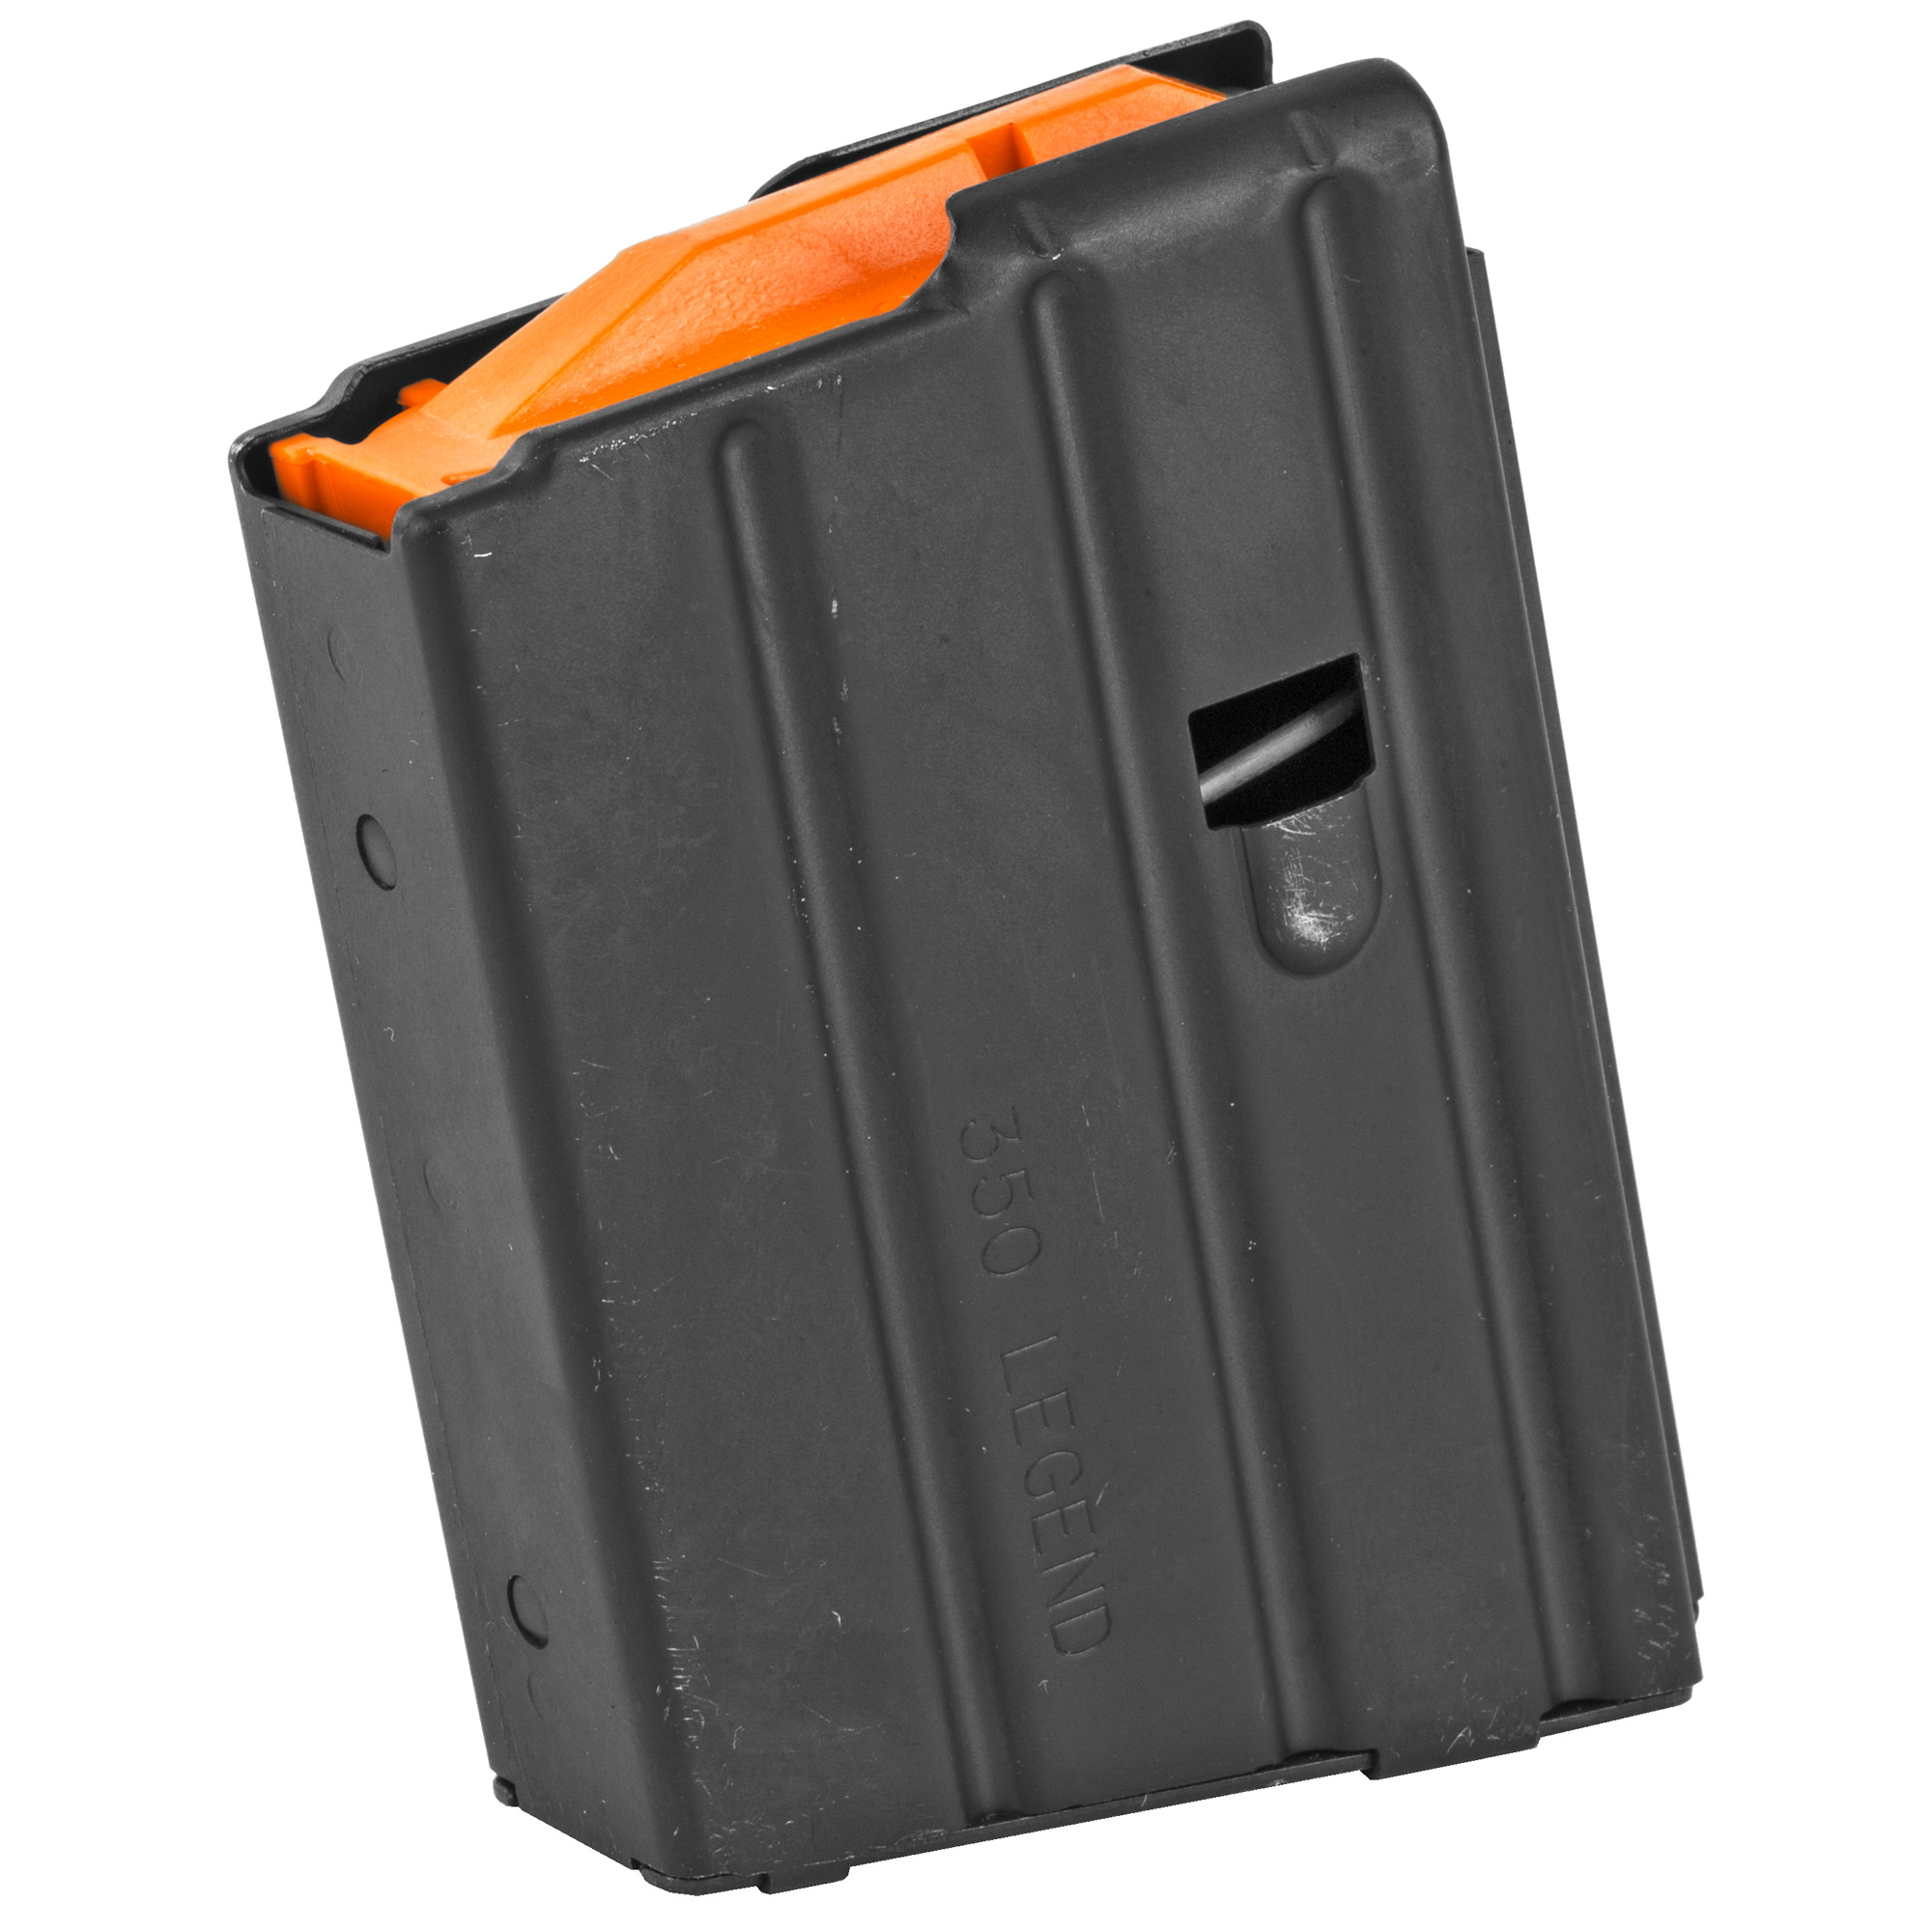 This CMMG Magazine is a standard factory replacement magazine that is designed for use with AR15's chambered in .350 Legend. It features a stainless steel body and holds 5 rounds of .350 Legend ammunition.